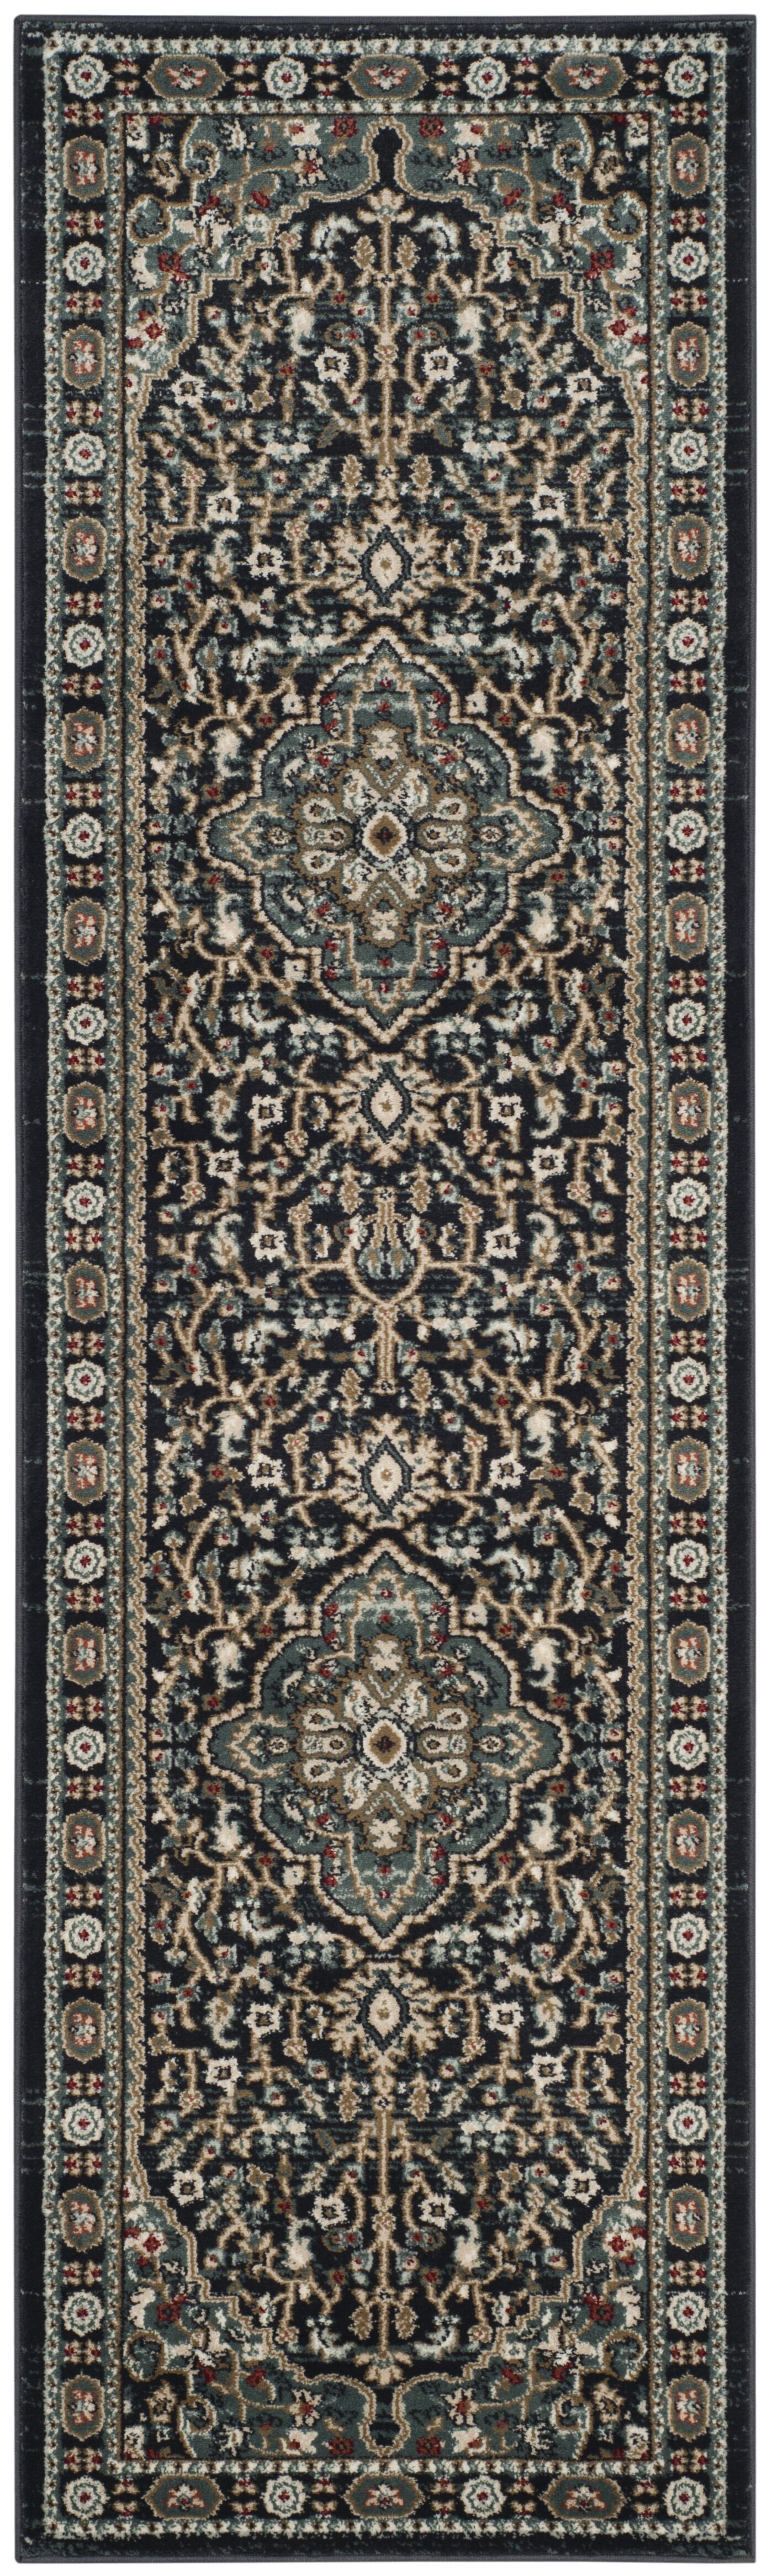 Taufner Anthracite/Teal Area Rug Rug Size: Runner 2'3